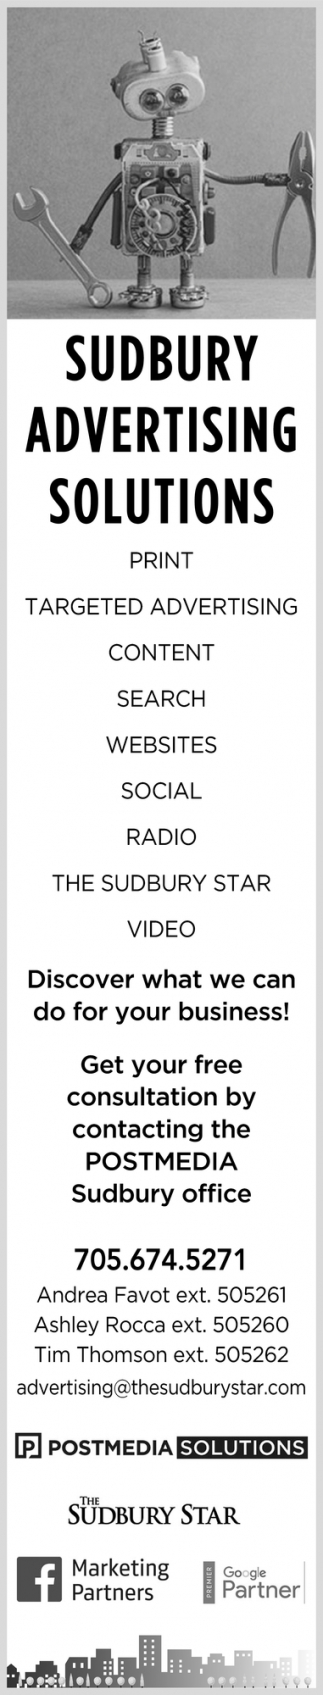 Sudbury Advertising Solutions